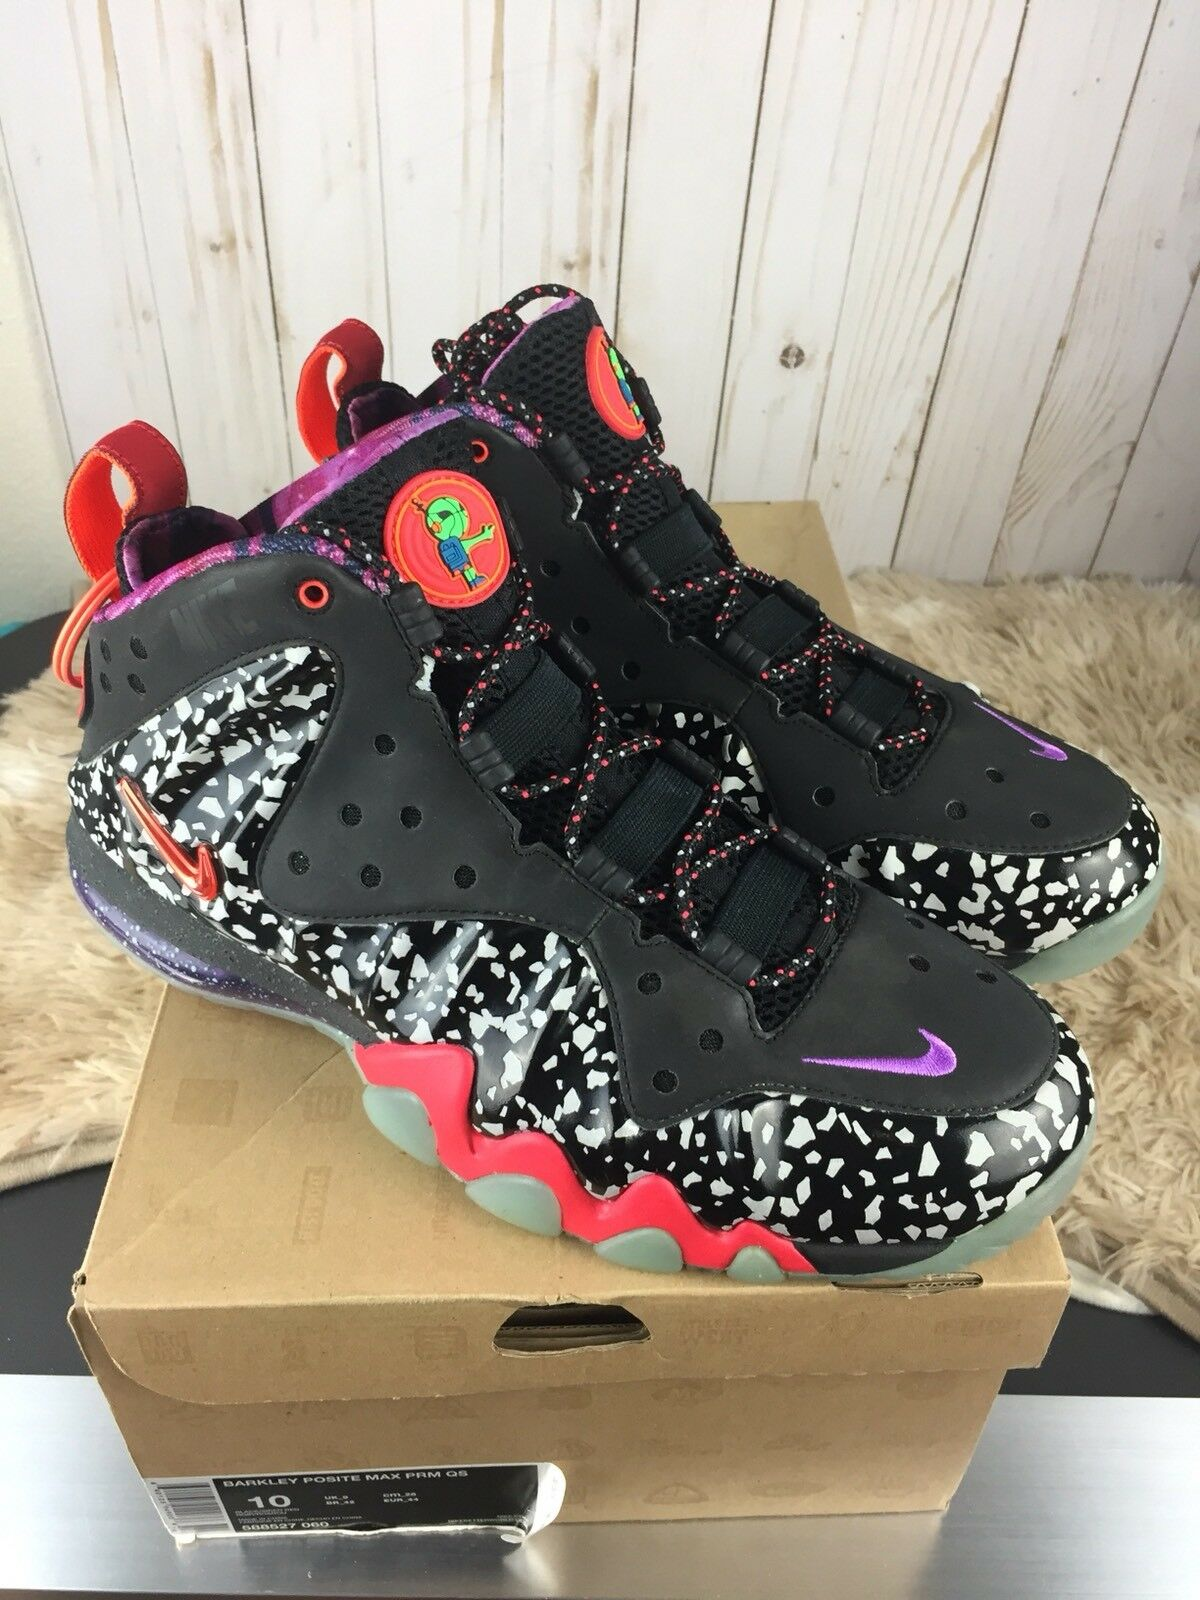 NIKE BARKLEY POSITE MAX QS  ASG ALL STAR AREA 72 Galaxy RAYGUN  588527-060 Price reduction The latest discount shoes for men and women